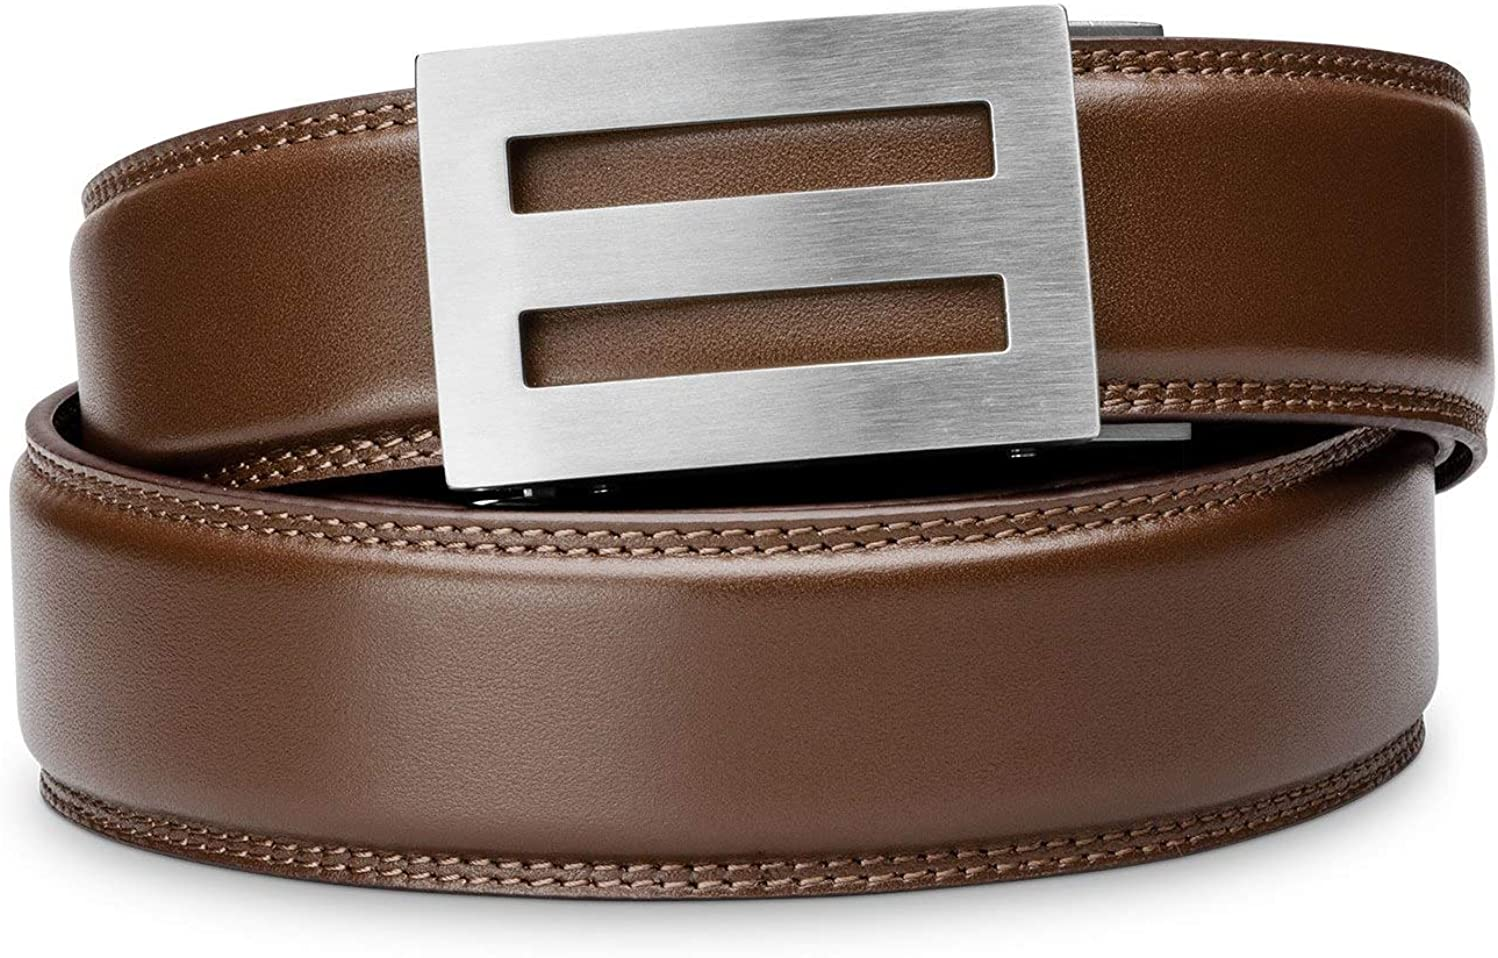 Kore Men S Full Grain Leather Track Belts Intrepid Stainless Steel Buckle At Amazon Men S Clothing Store Kore men's belts offer 40+ sizing positions to adjust with for a perfect fit. kore men s full grain leather track belts intrepid stainless steel buckle